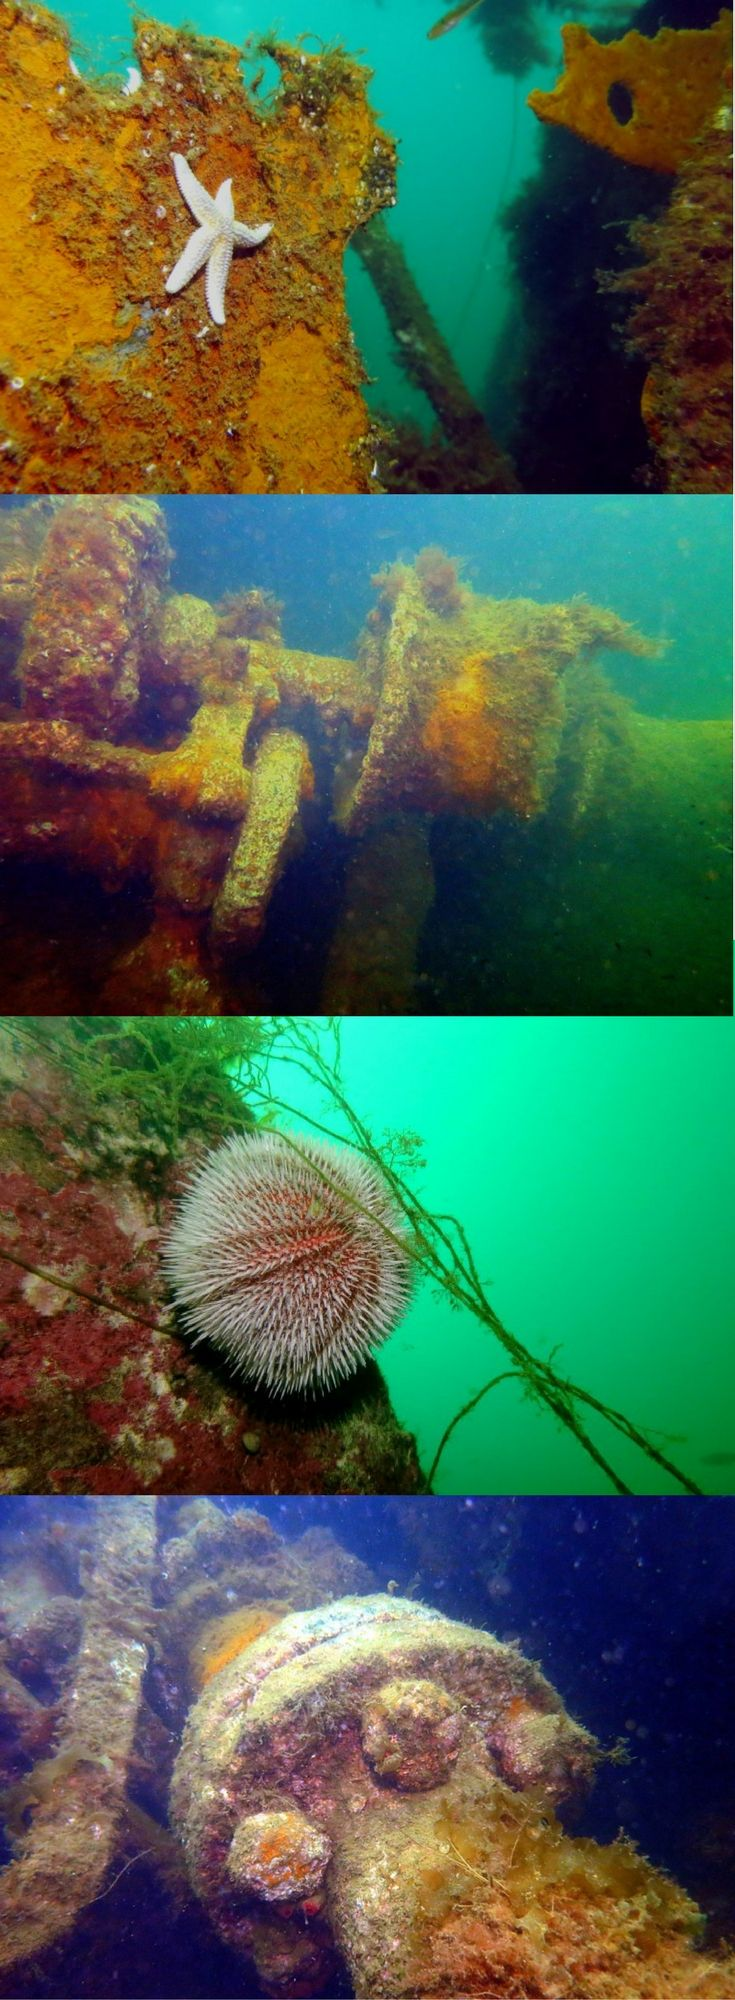 Scuba Diving in Churchill Barriers - A scuba diving road to Scapa Flow, Orkney Islands, Scotland, UK – World Adventure Divers – Read more on https://worldadventuredivers.com/2015/10/17/a-scuba-road-trip-to-scapa-flow-orkney-scotland/